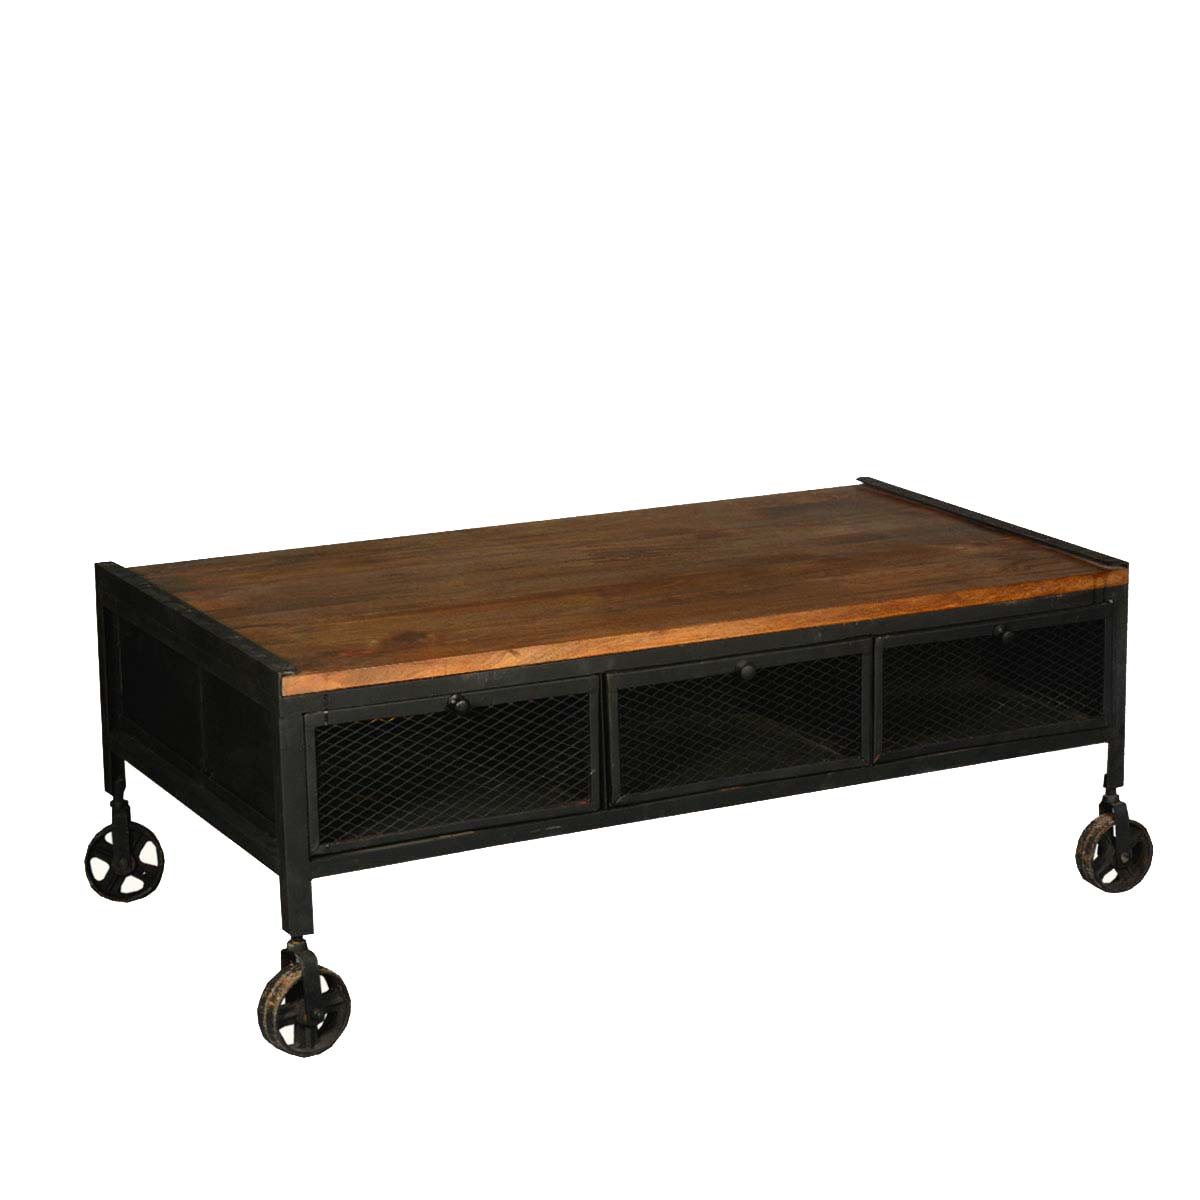 Aiden industrial rustic coffee table with drawers Espresso coffee table